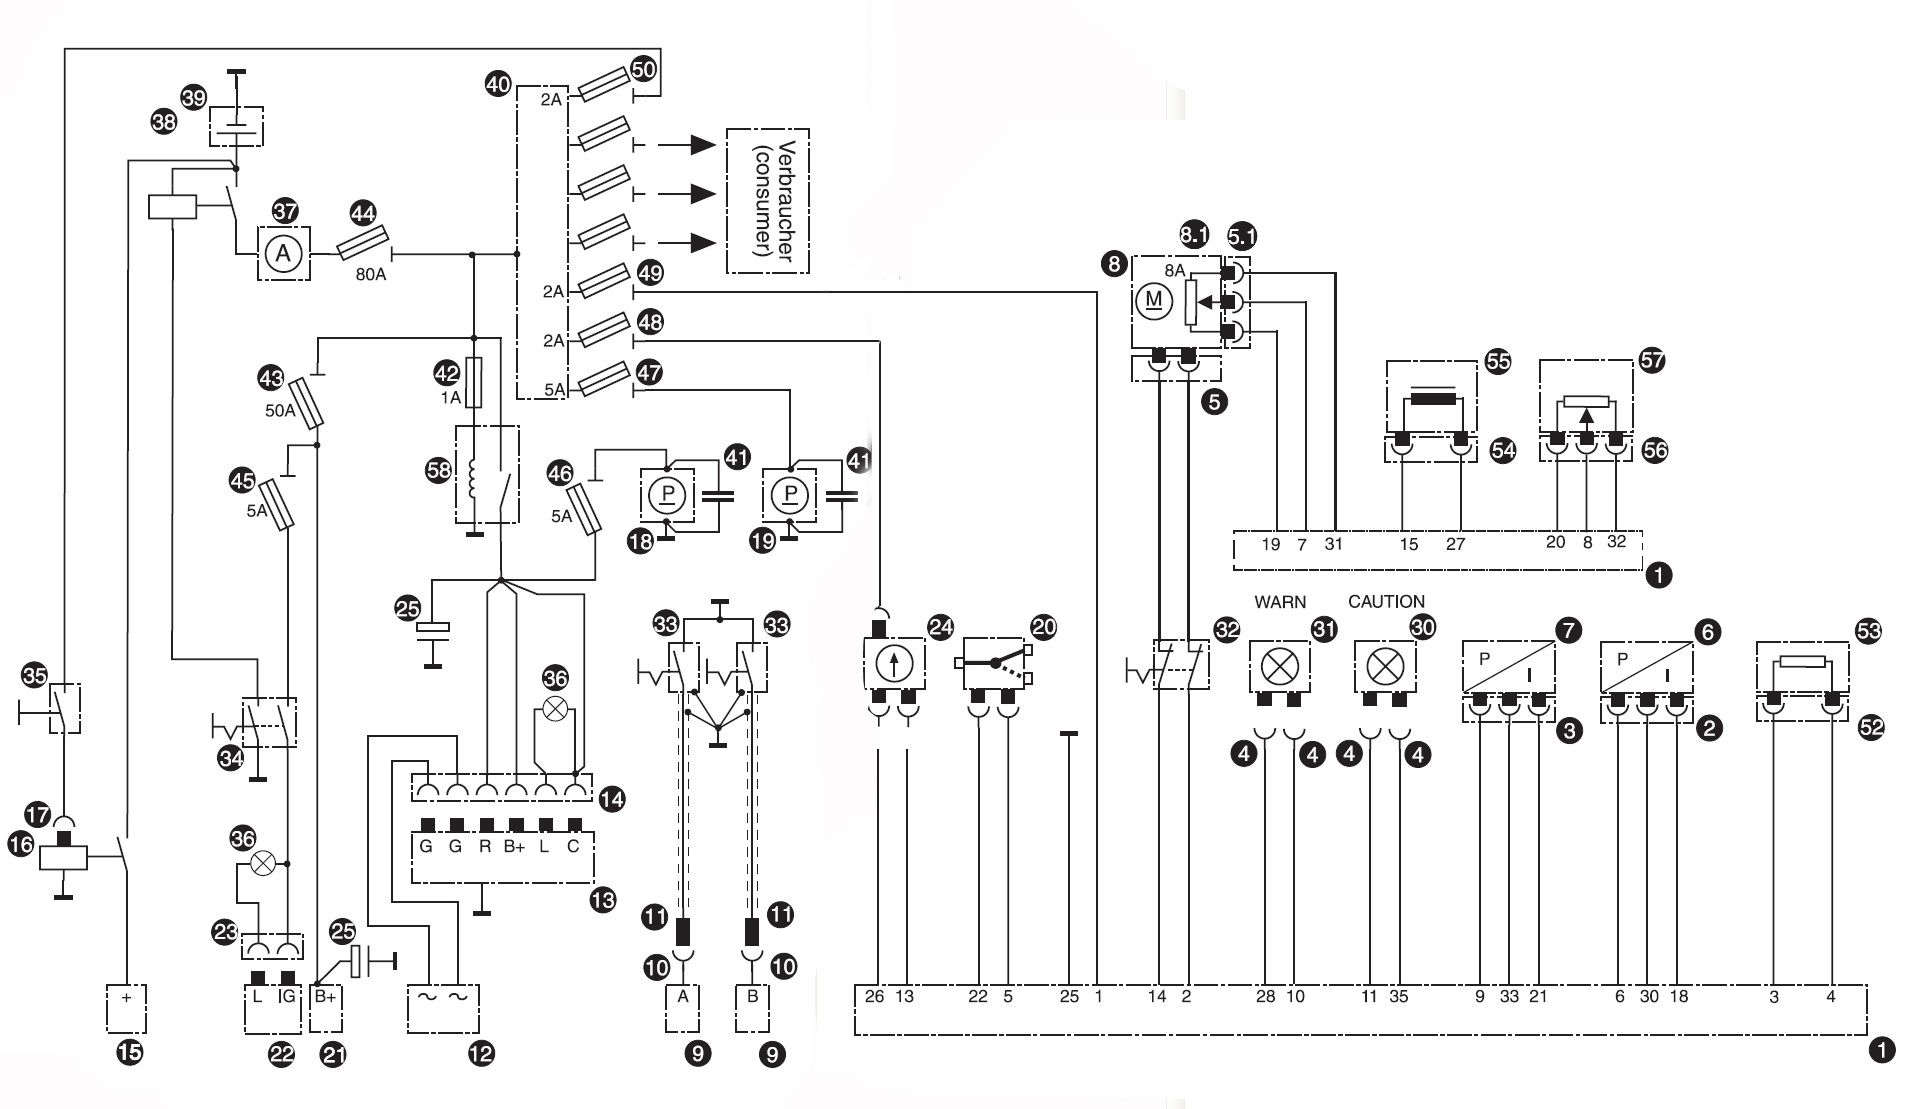 Rotax_914_Electrical aeroelectric connection manufacturer's data avionics wiring diagrams at eliteediting.co